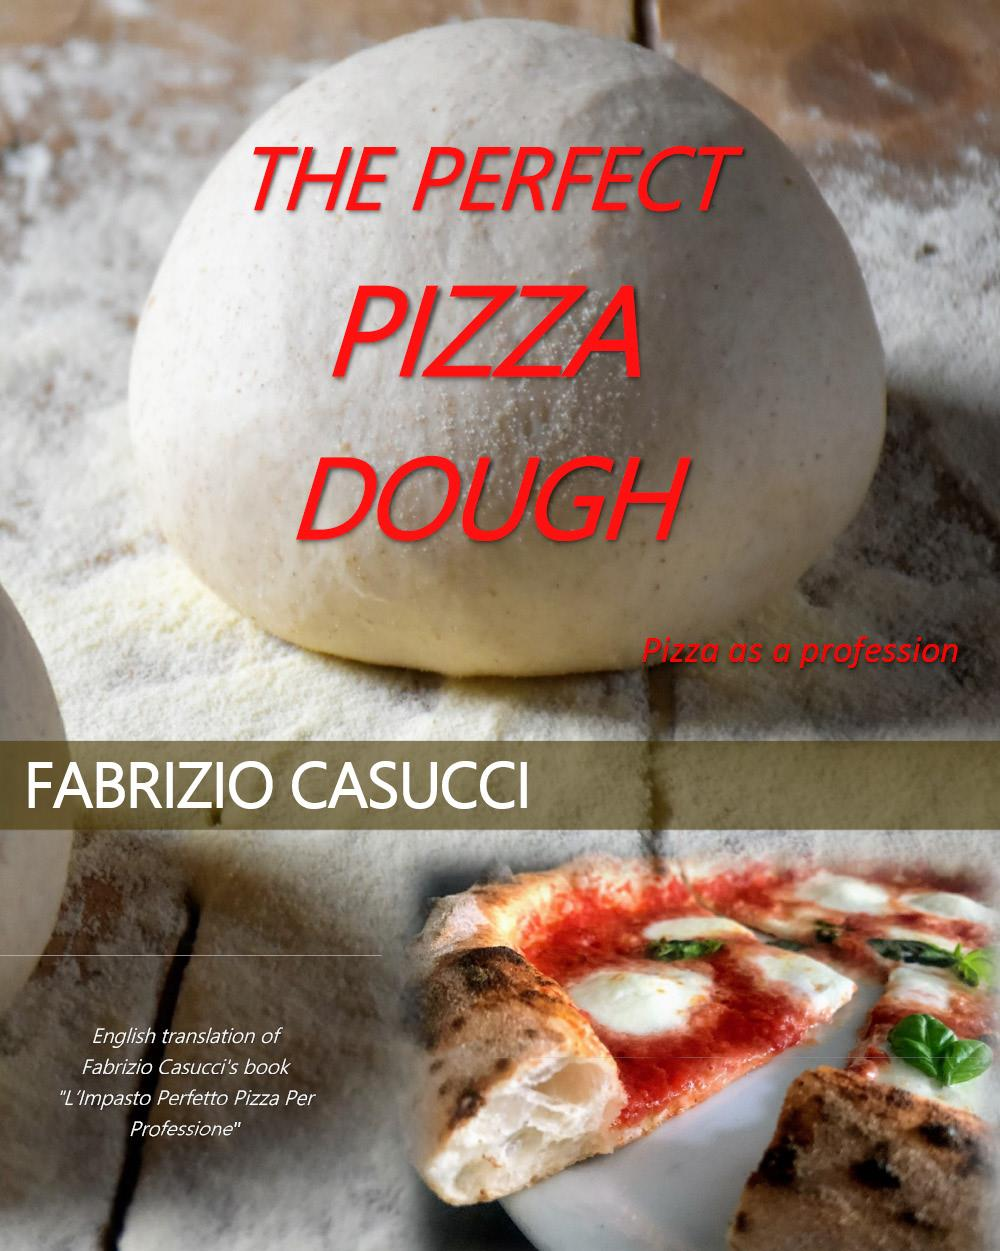 The Perfect Pizza Dough Pizza as a Profession